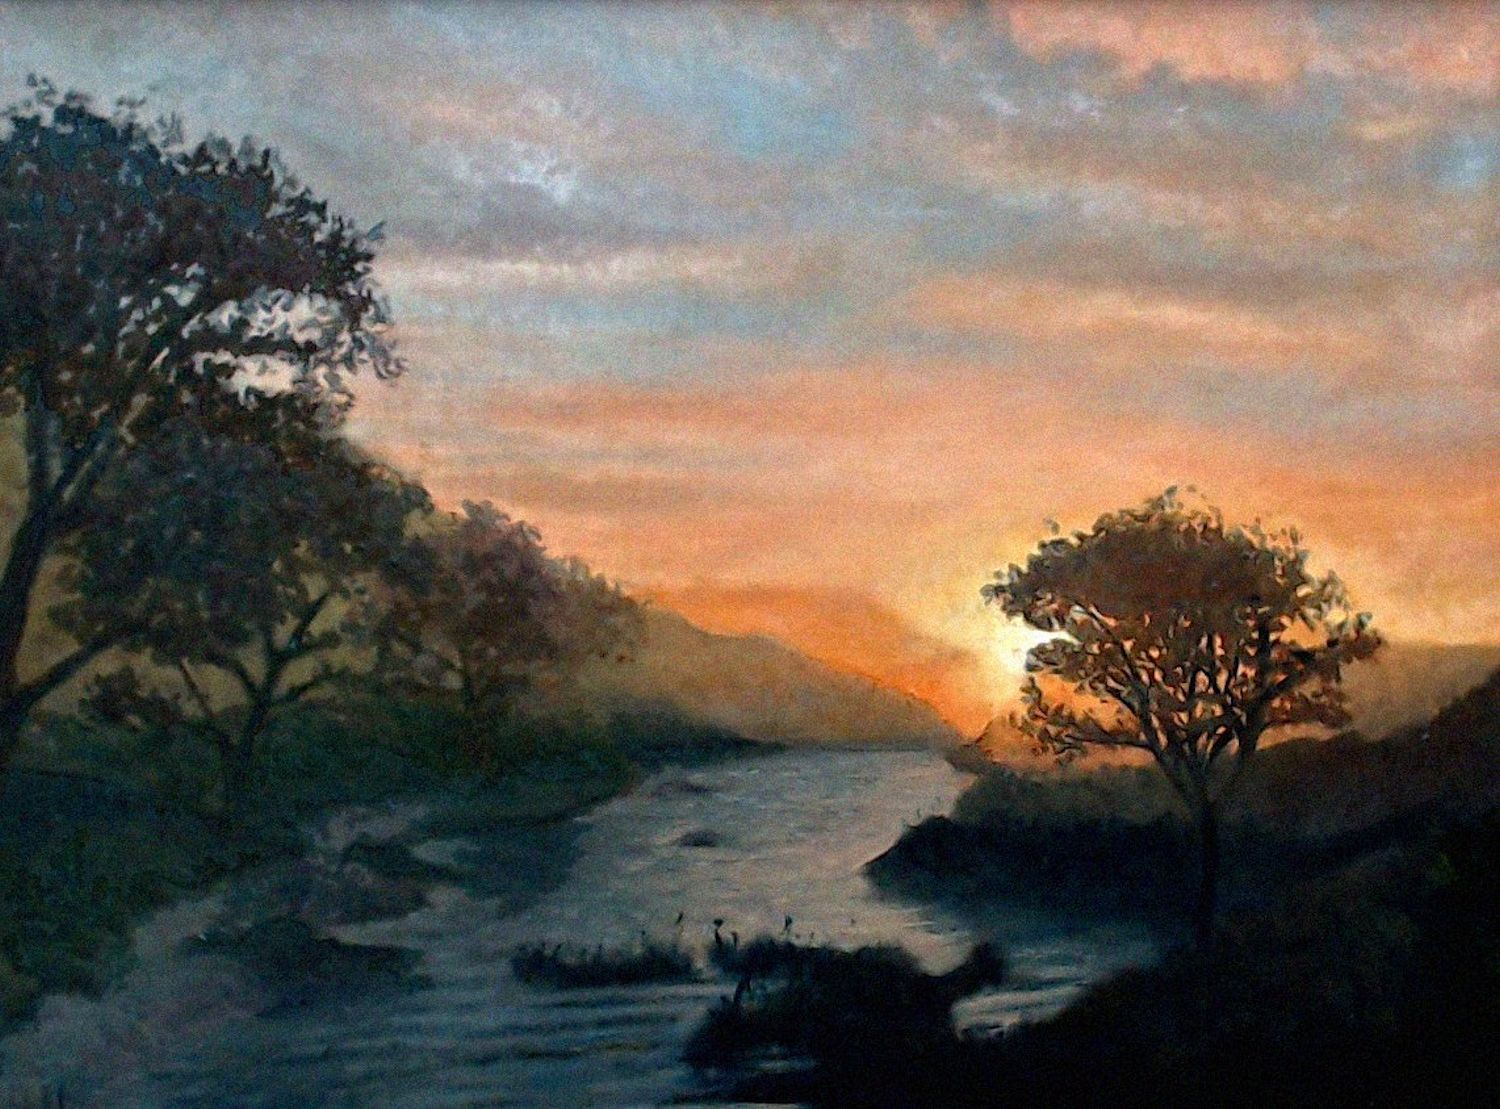 Sunset on a River